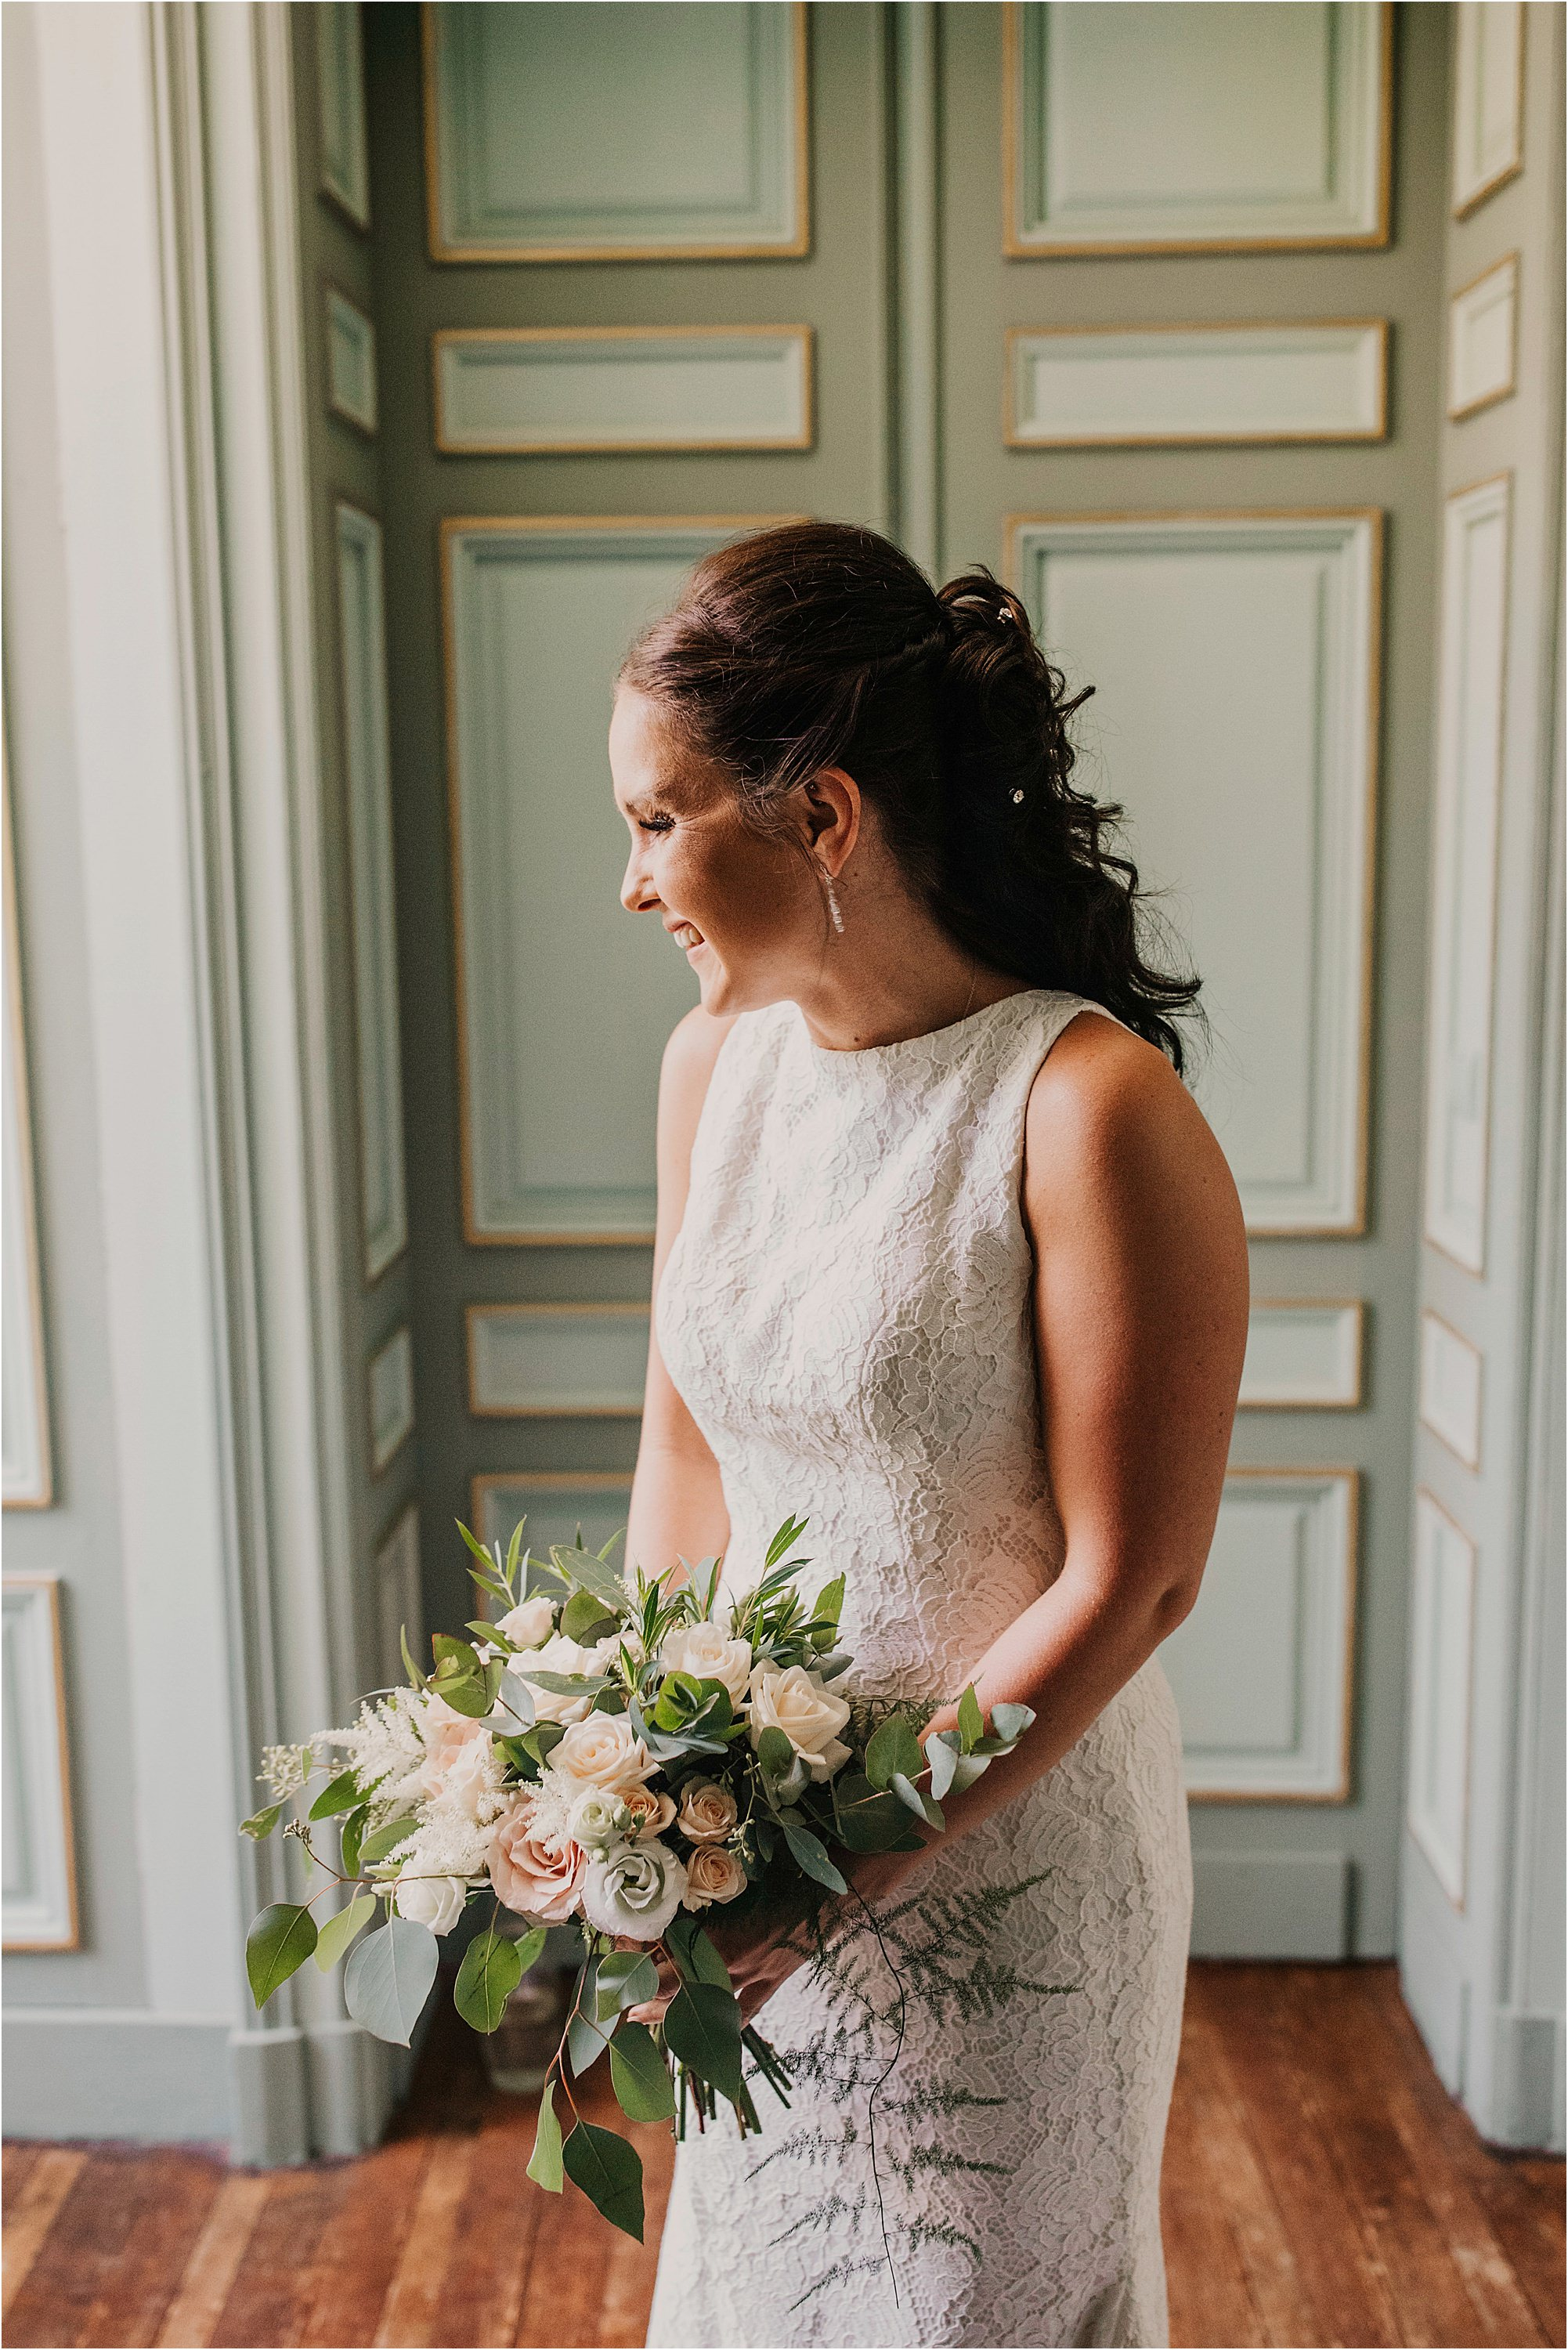 bride laughing during portrait at a chateau la durantie wefdding